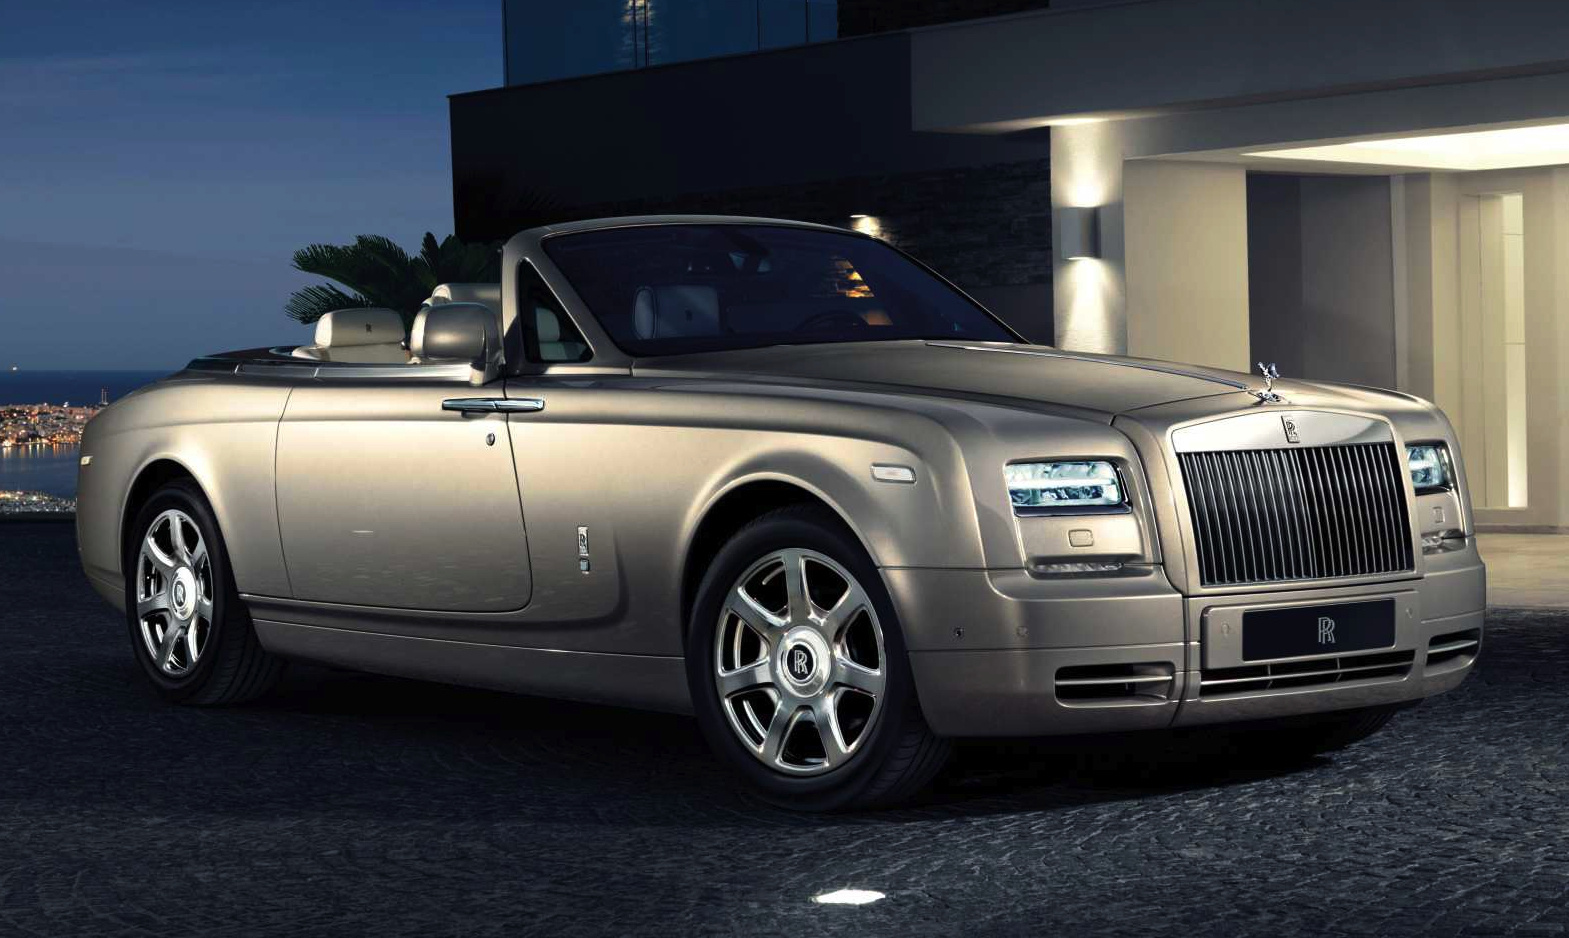 2014 Rolls royce Phantom Drophead Coupe #2